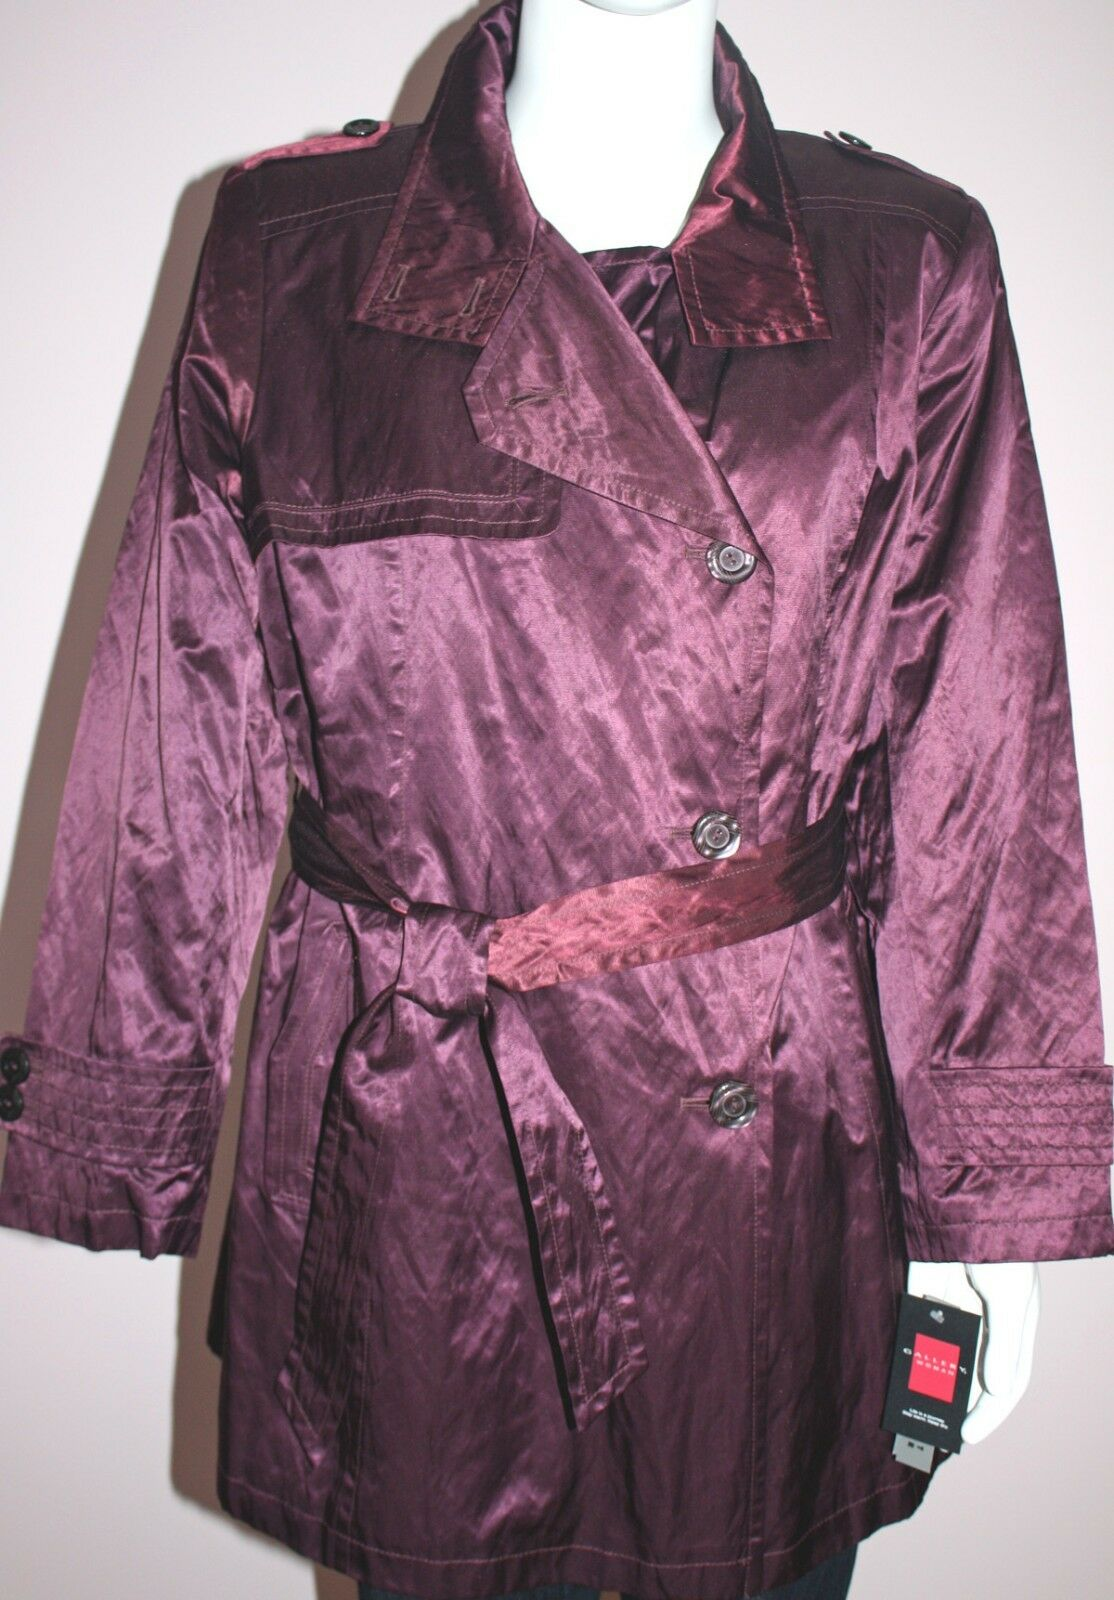 NWT GALLERY Woman Purple Wine Coat Plus Size 1X color nxmuyk3433 ...